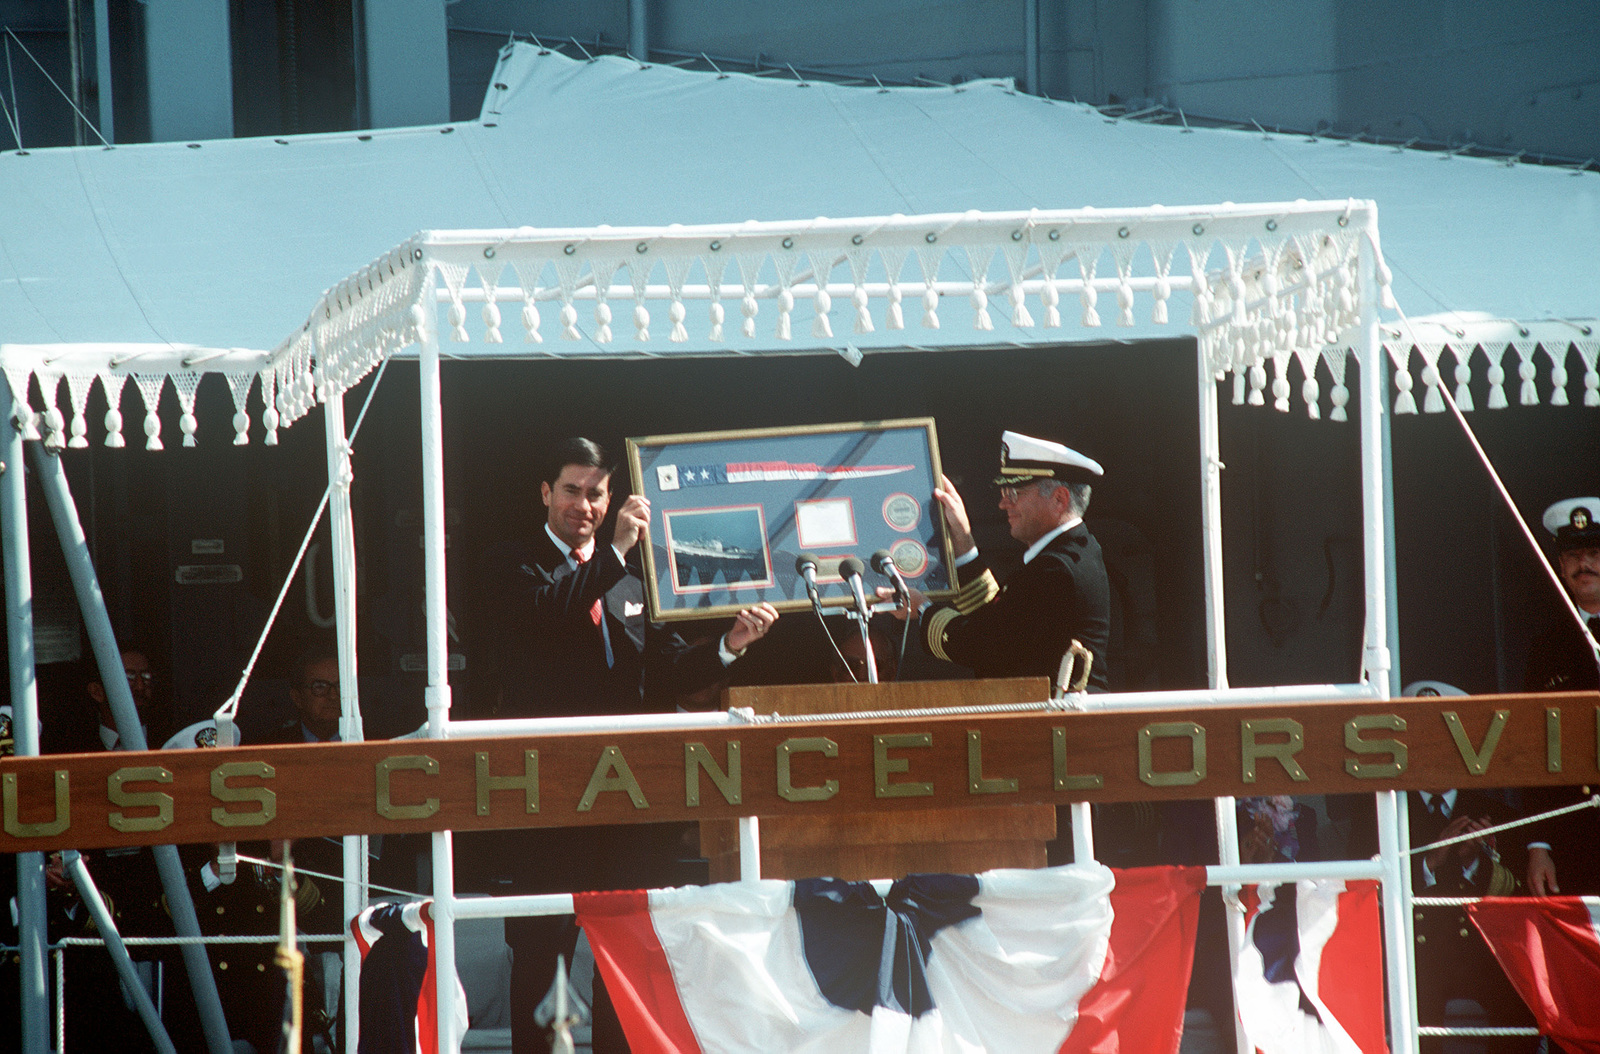 Senator Charles S. Robb, D-VA, principal speaker, and Captain Gordon H. Rheinstrom, commanding officer of the guided missile cruiser USS CHANCELLORSVILLE (CG 62), display a commemorative plaque to guests during the vessel's commissioning ceremony